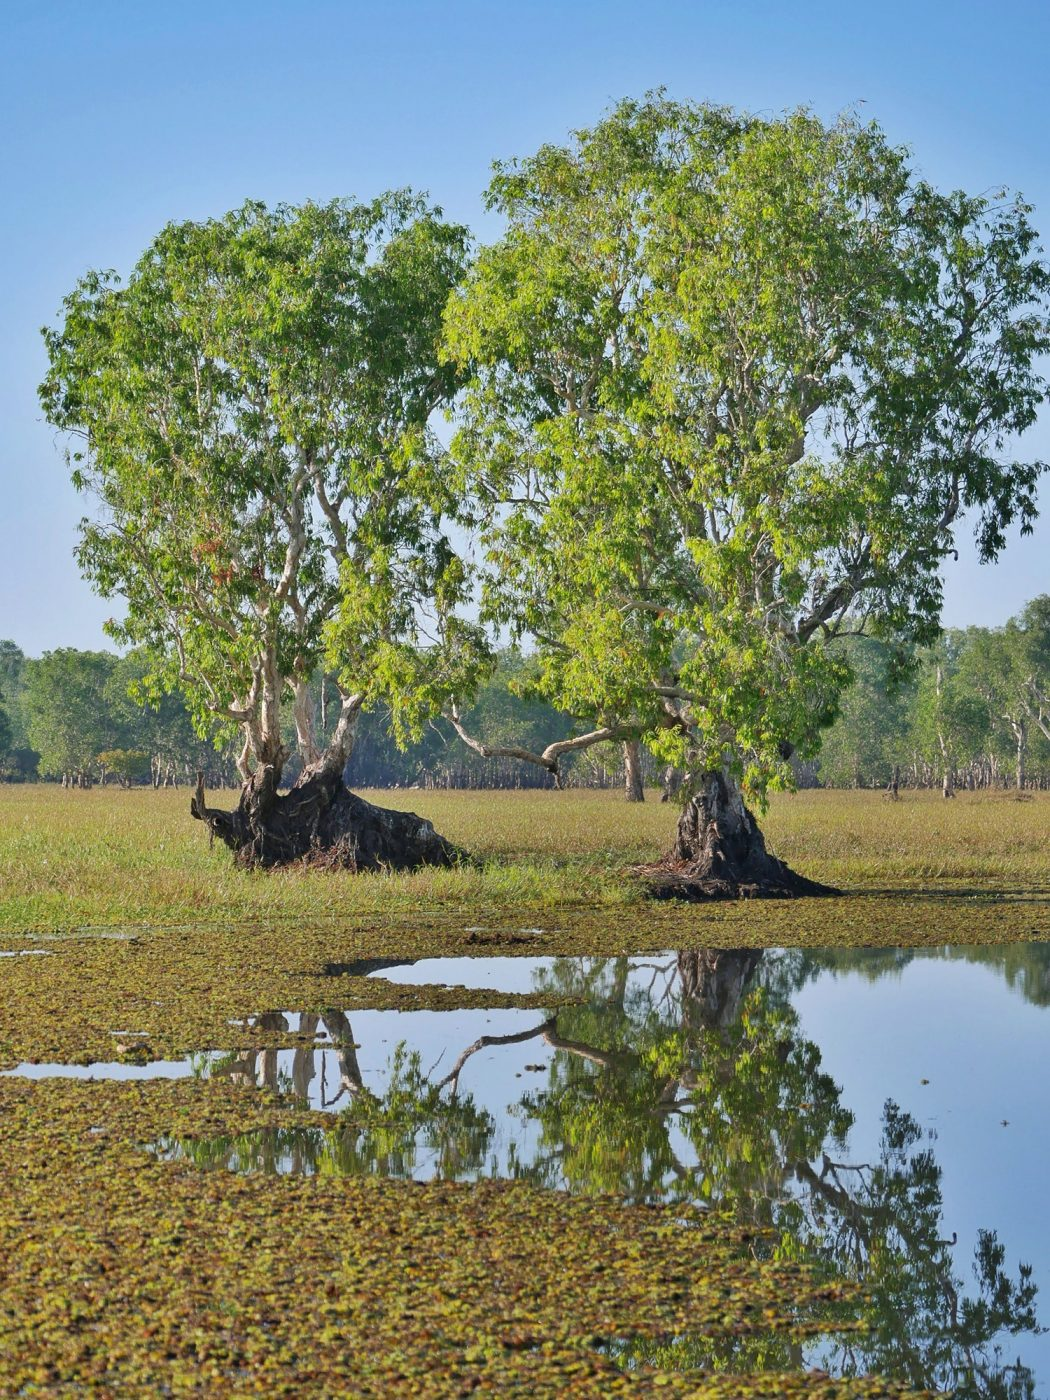 Beautiful trees reflecting as a mirror in the water - Kakadu National Park